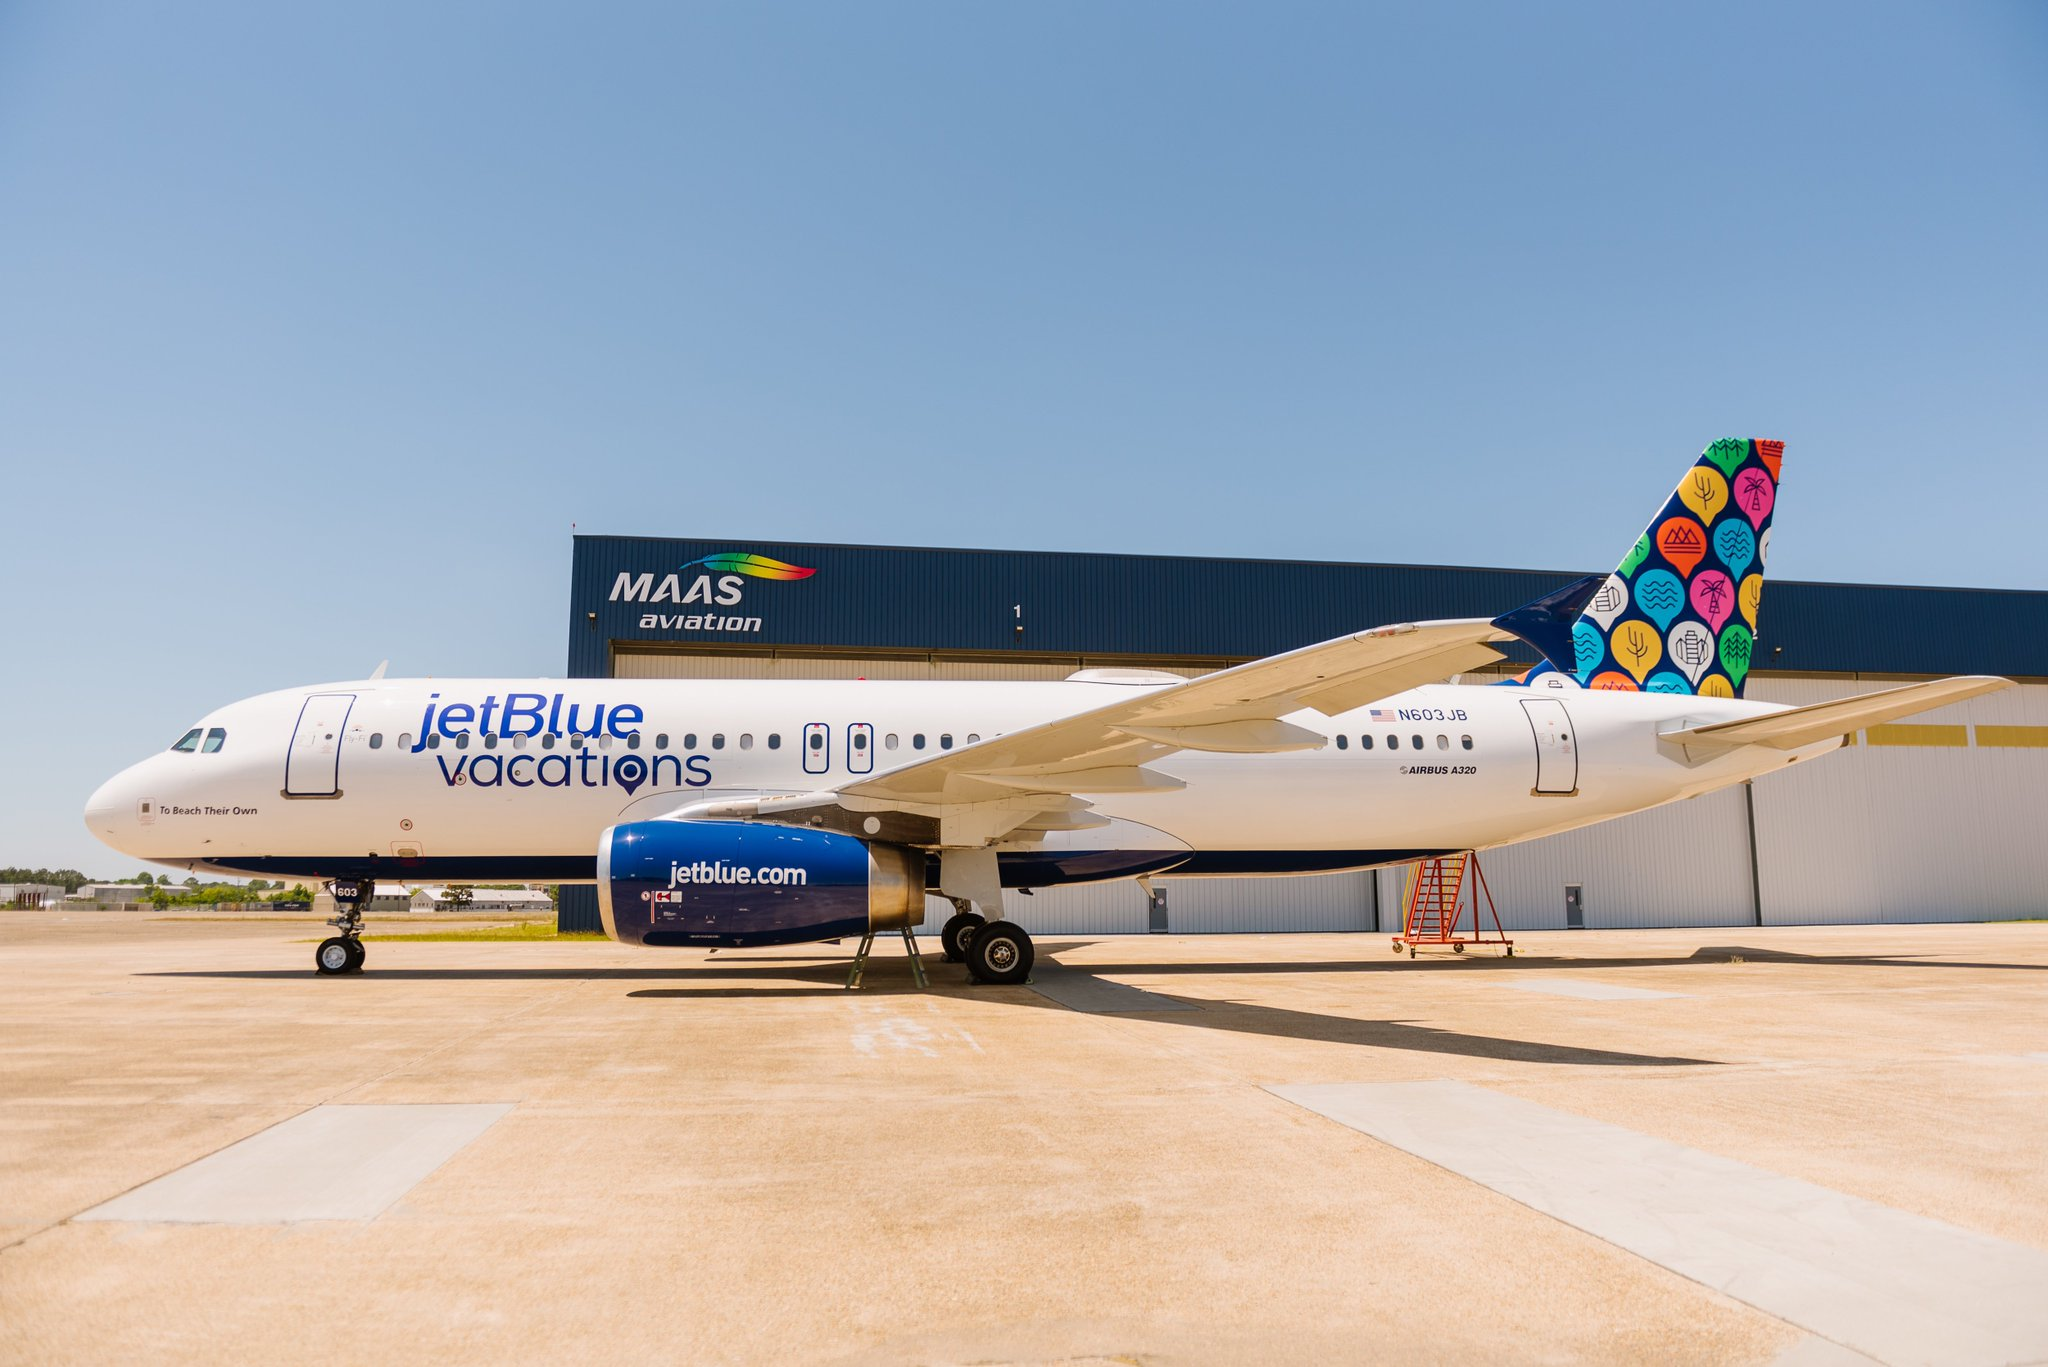 HelloJetBlue on Twitter Introducing our brandnew